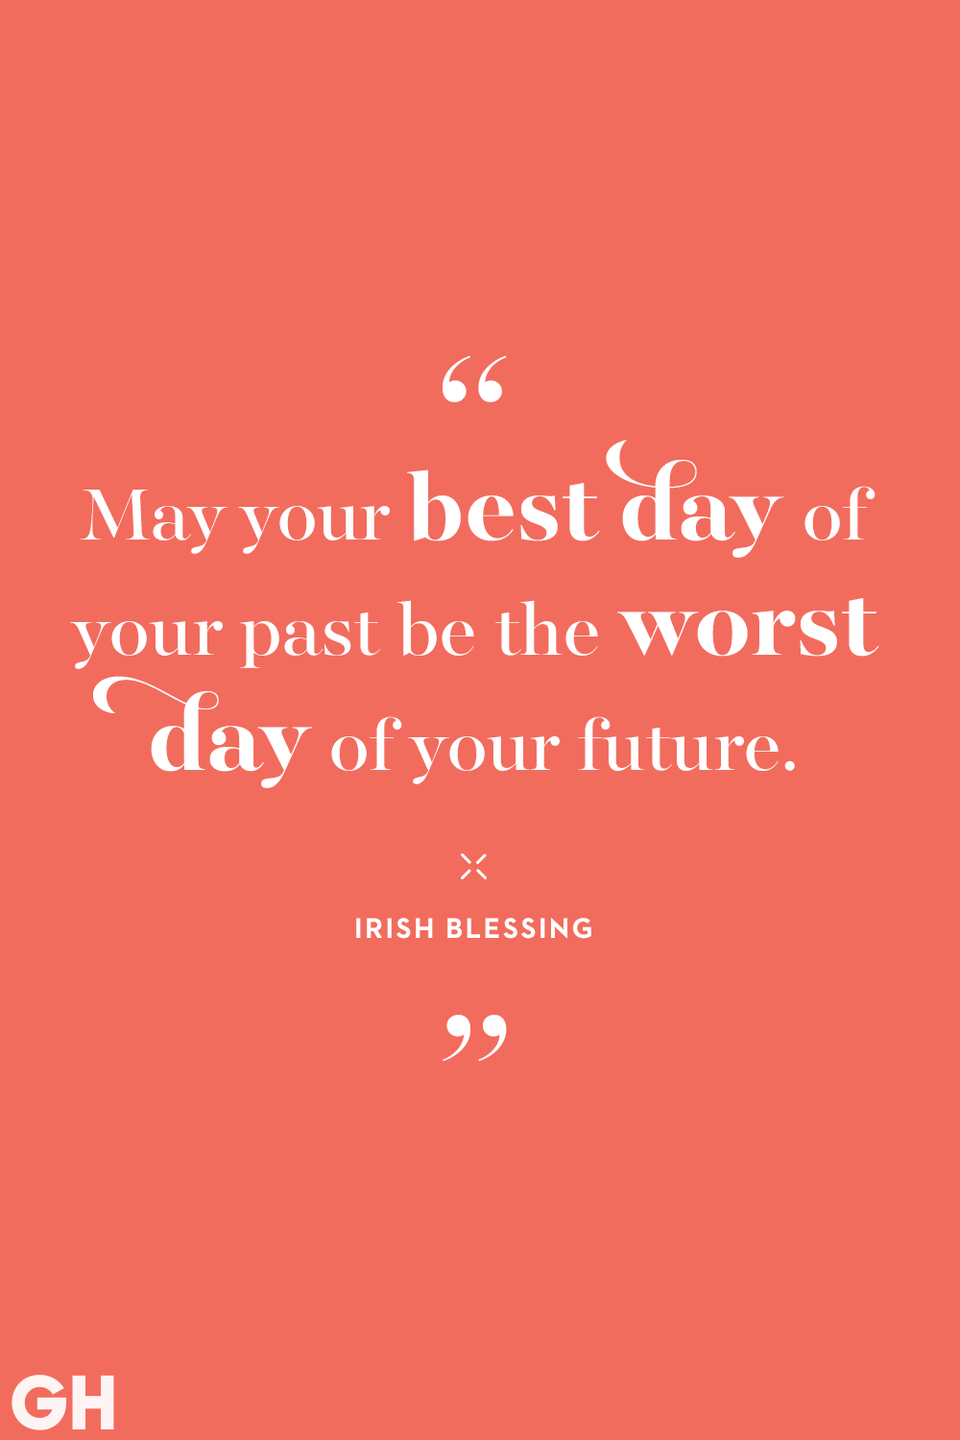 "<p>""May your best day of your past be the worst day of your future."" </p>"